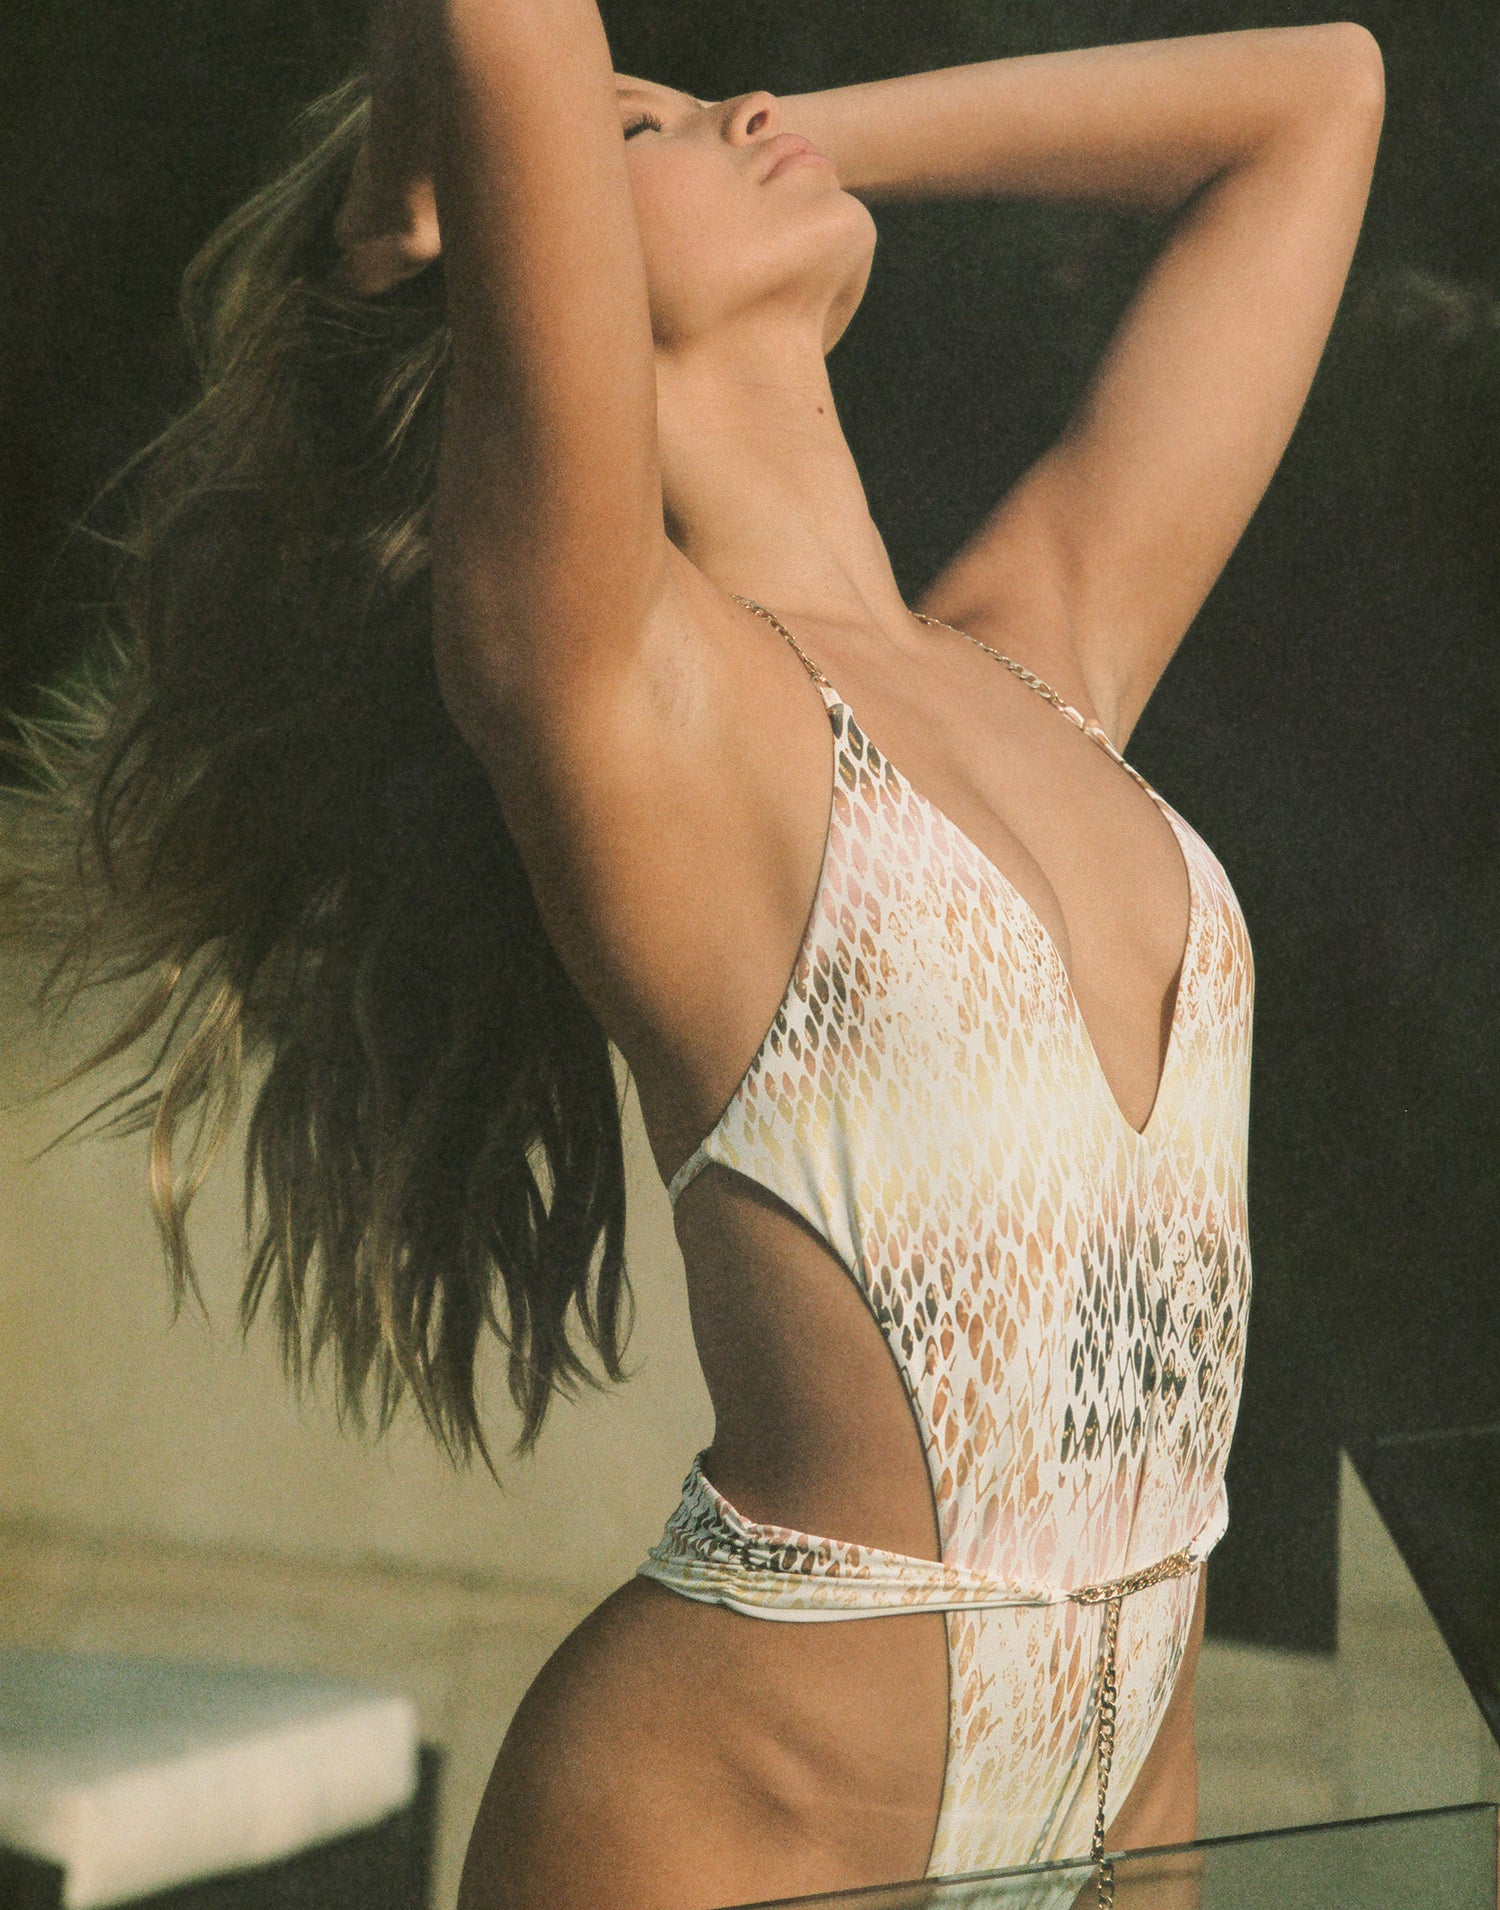 Brooklyn One Piece in Snake Multi with Gold Chain Hardware - Alternate Angled View / Summer 2021 Campaign - Josie C